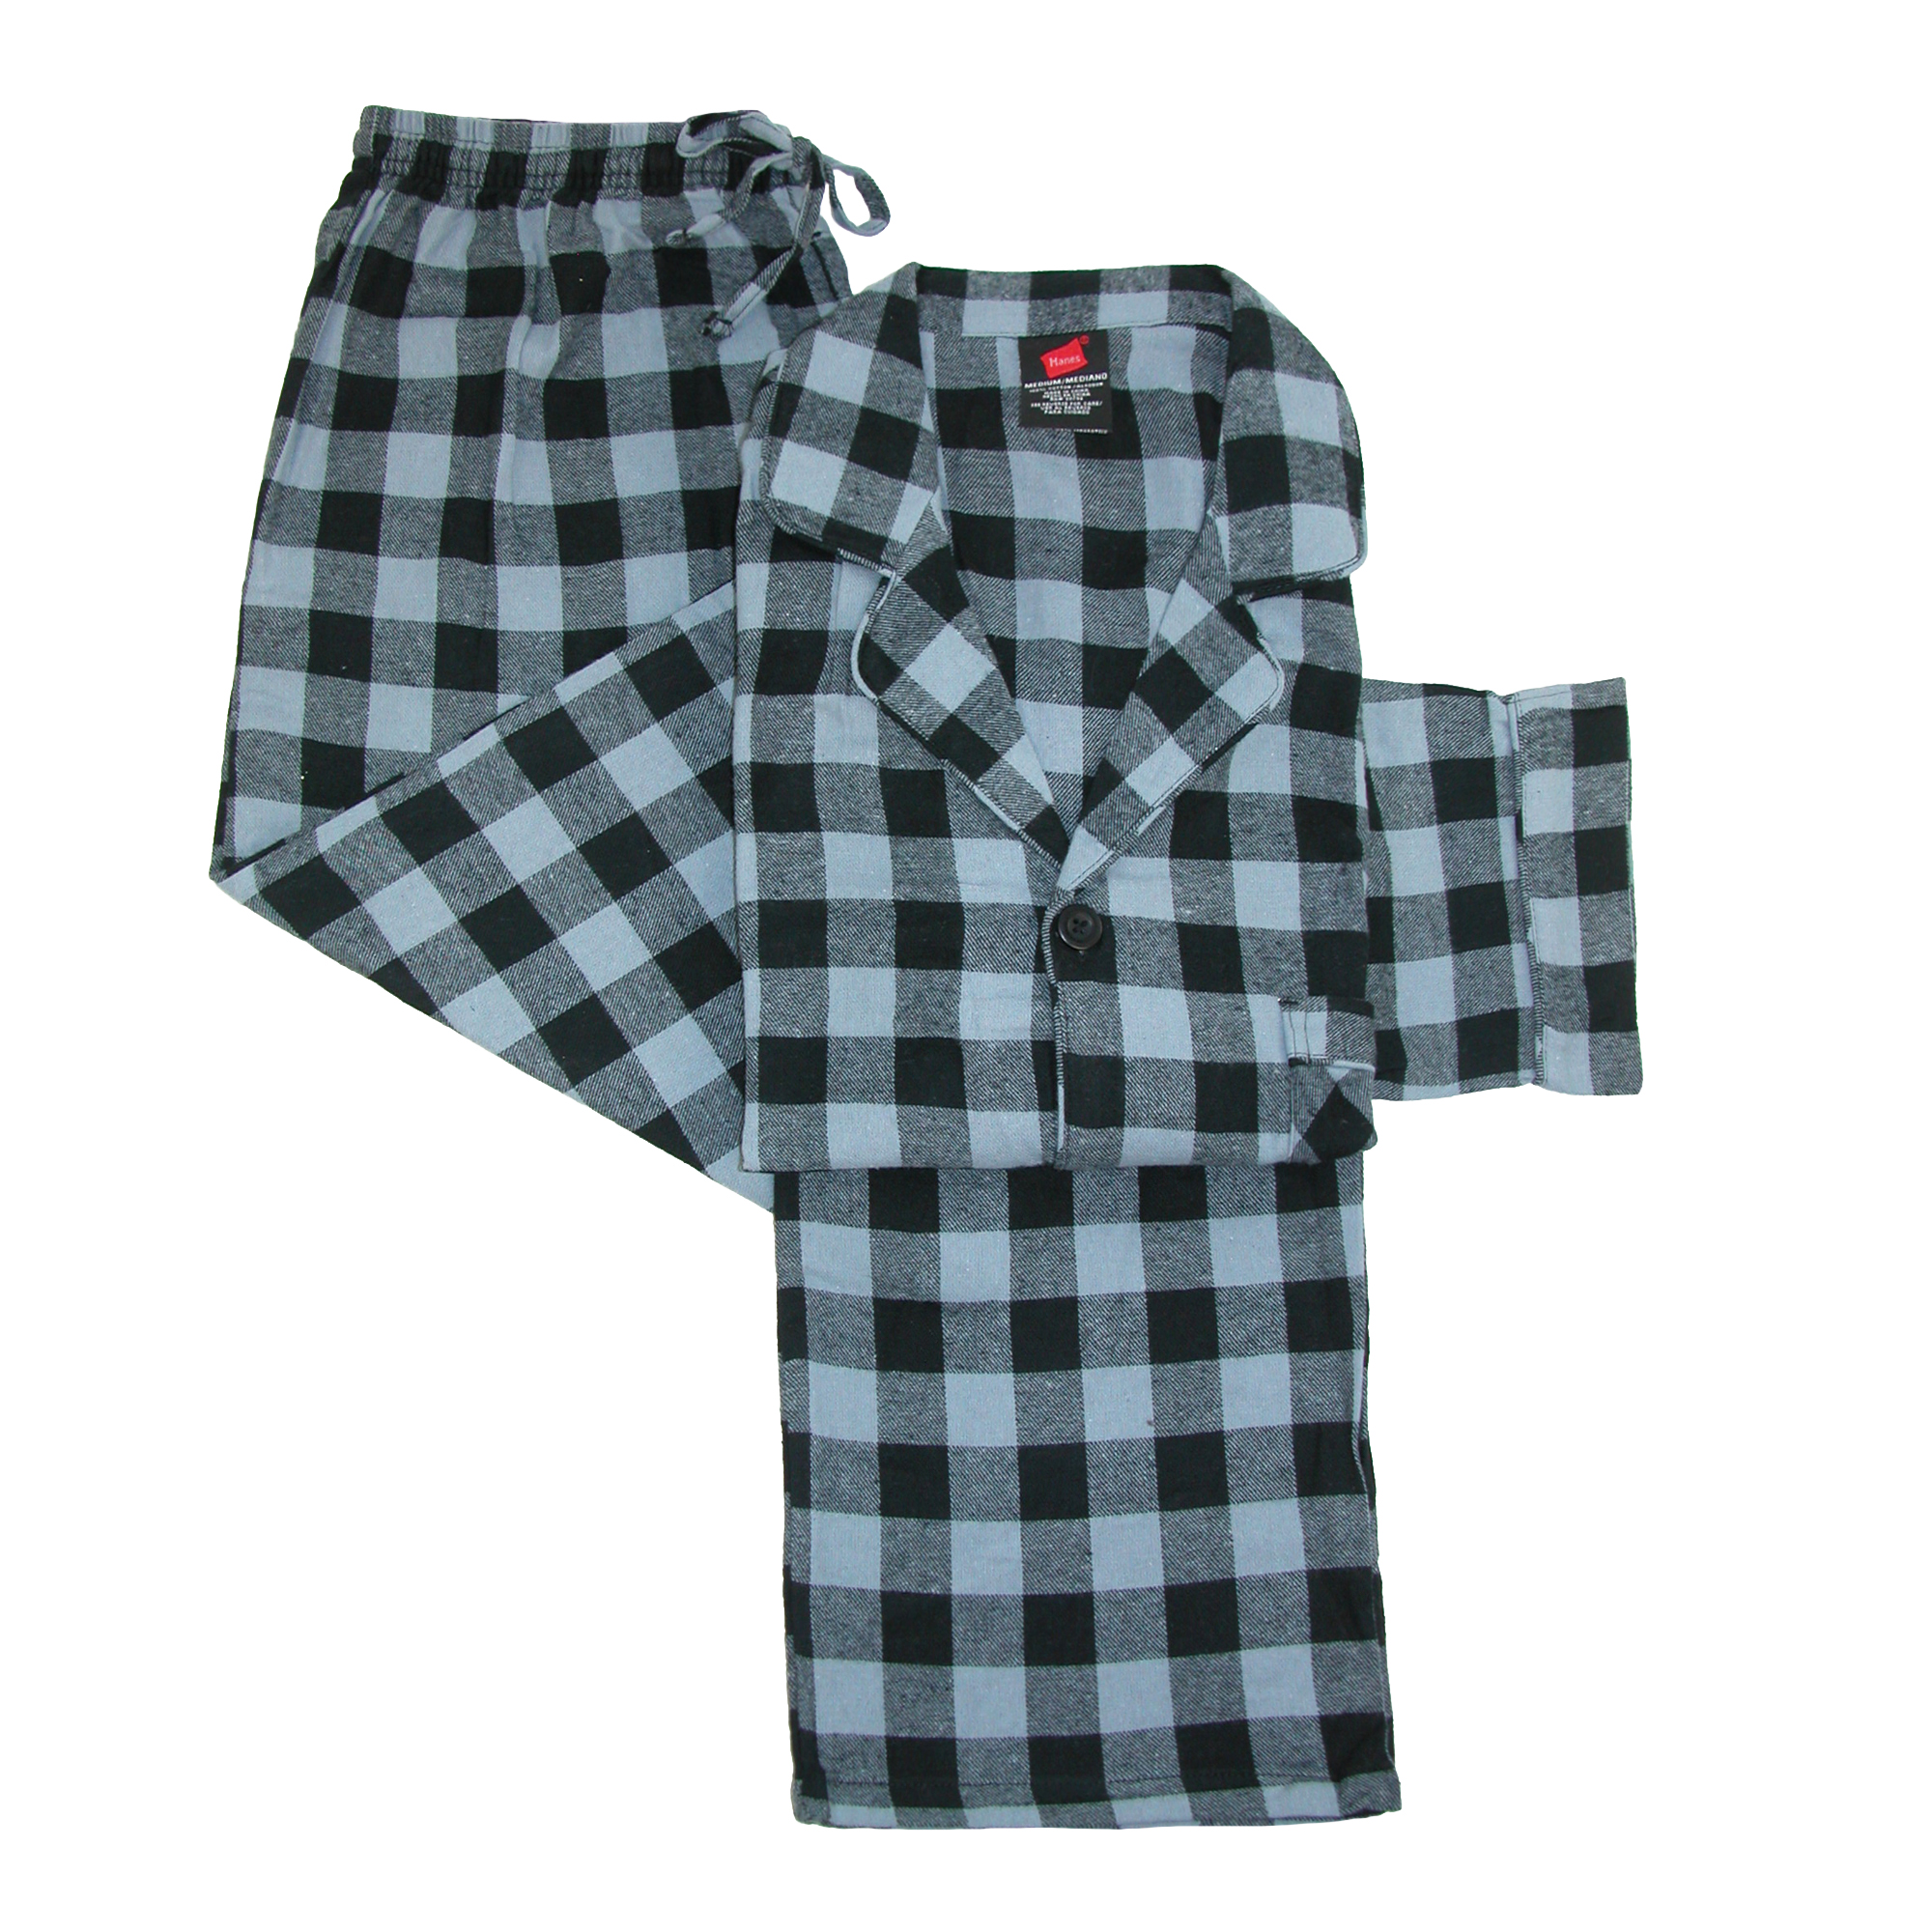 Hanes Hanes Men S Cotton Flannel Pajama Set Walmart Com